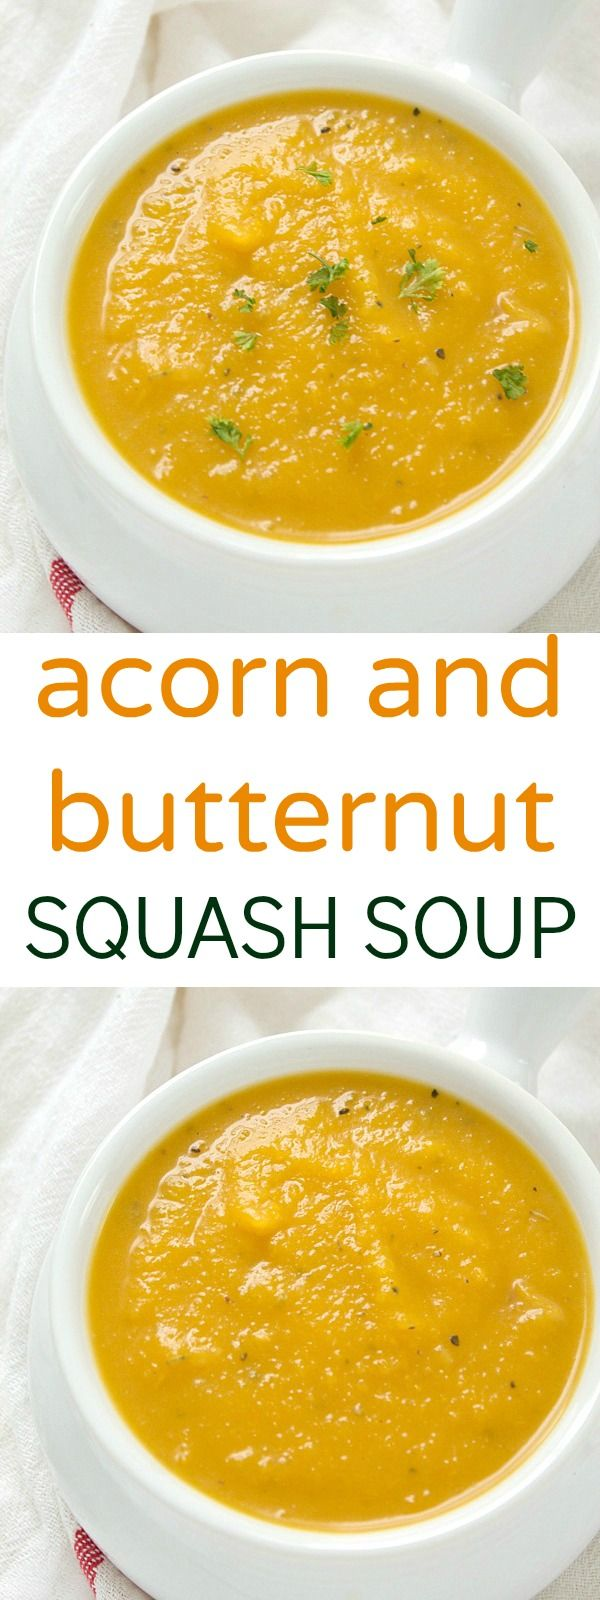 A flavorful acorn and butternut squash soup recipe that is loaded with fresh vegetables! Pairs perfectly with a slice of buttered french bread!